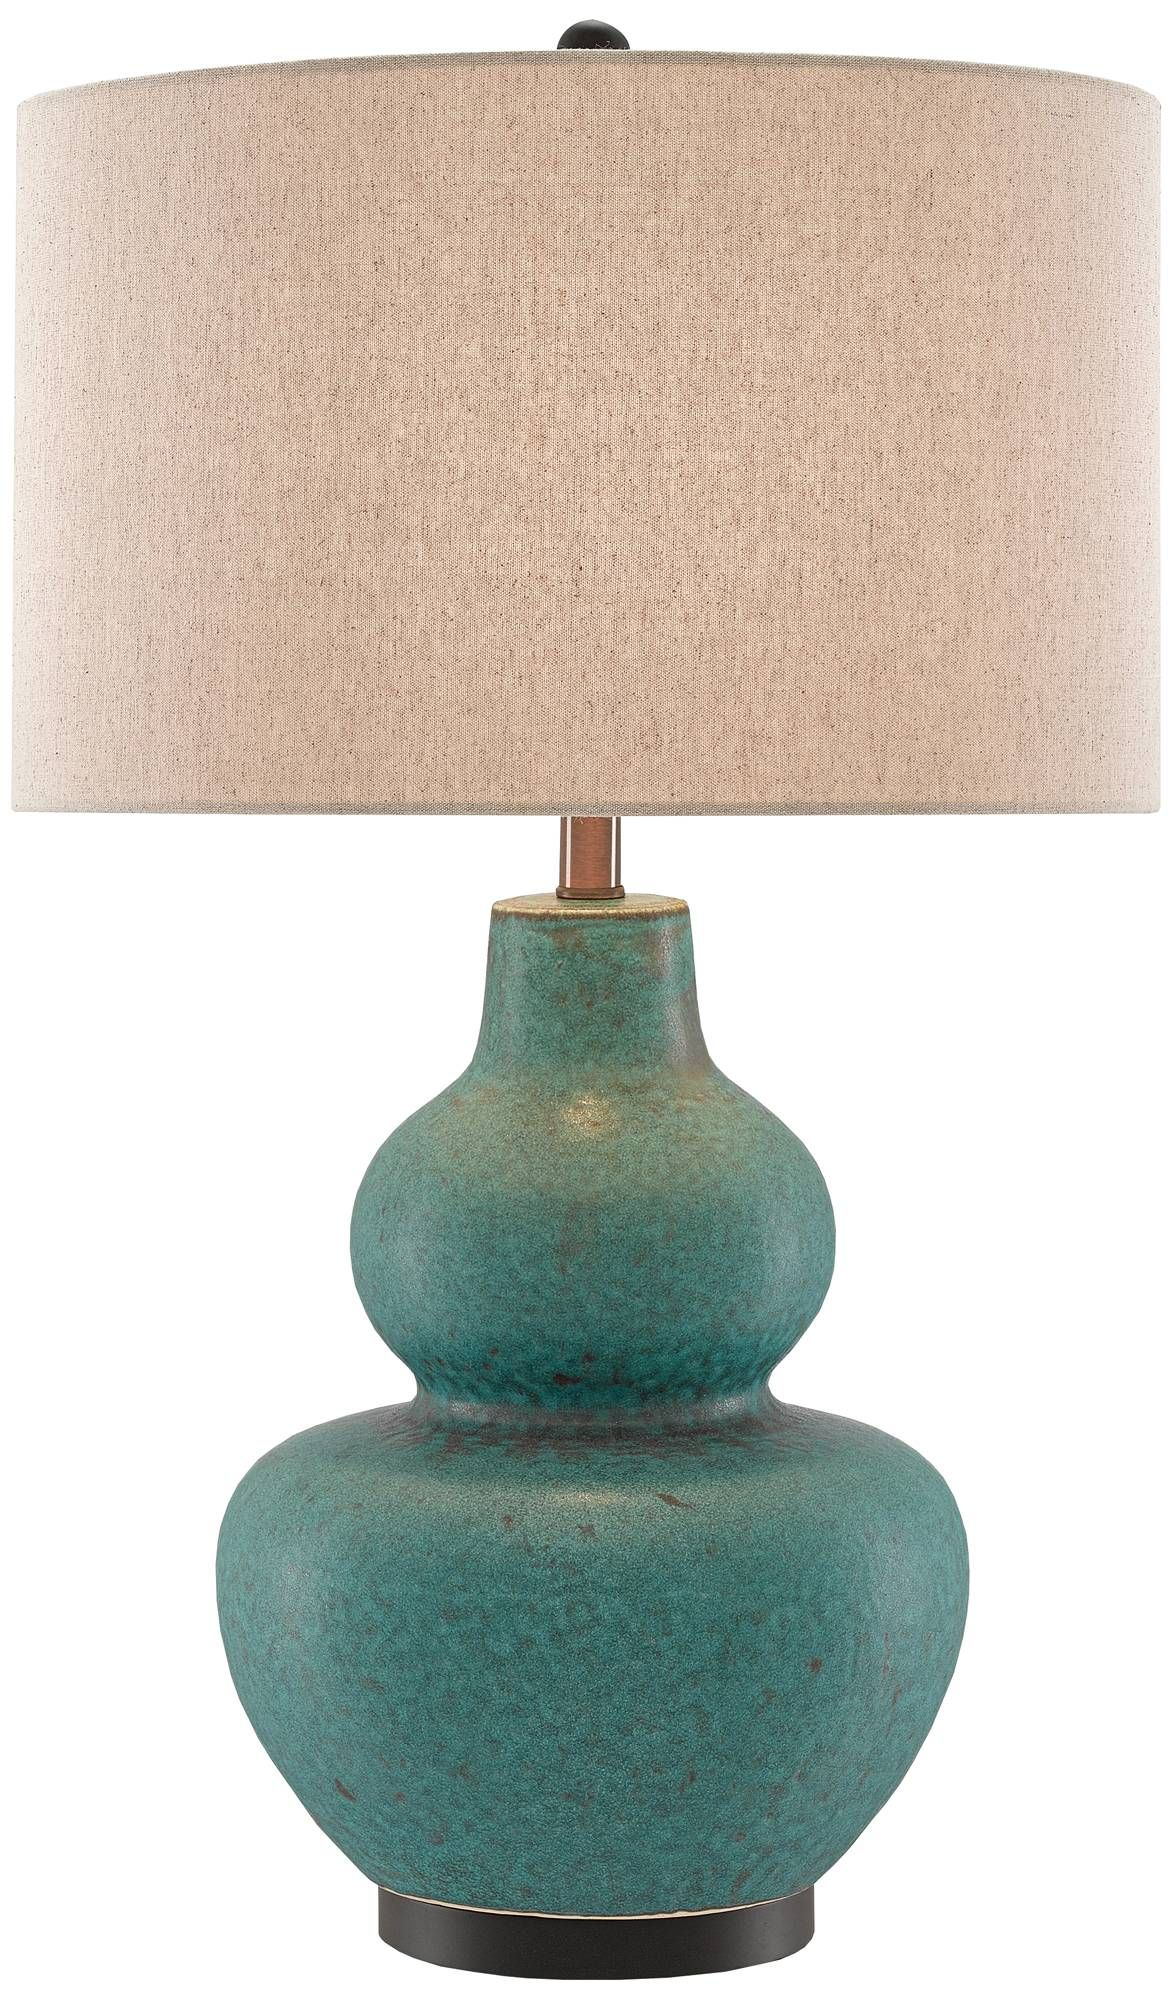 Currey And Company Agean Matte Turquoise Ceramic Table Lamp   #17Y50 | Lamps  Plus